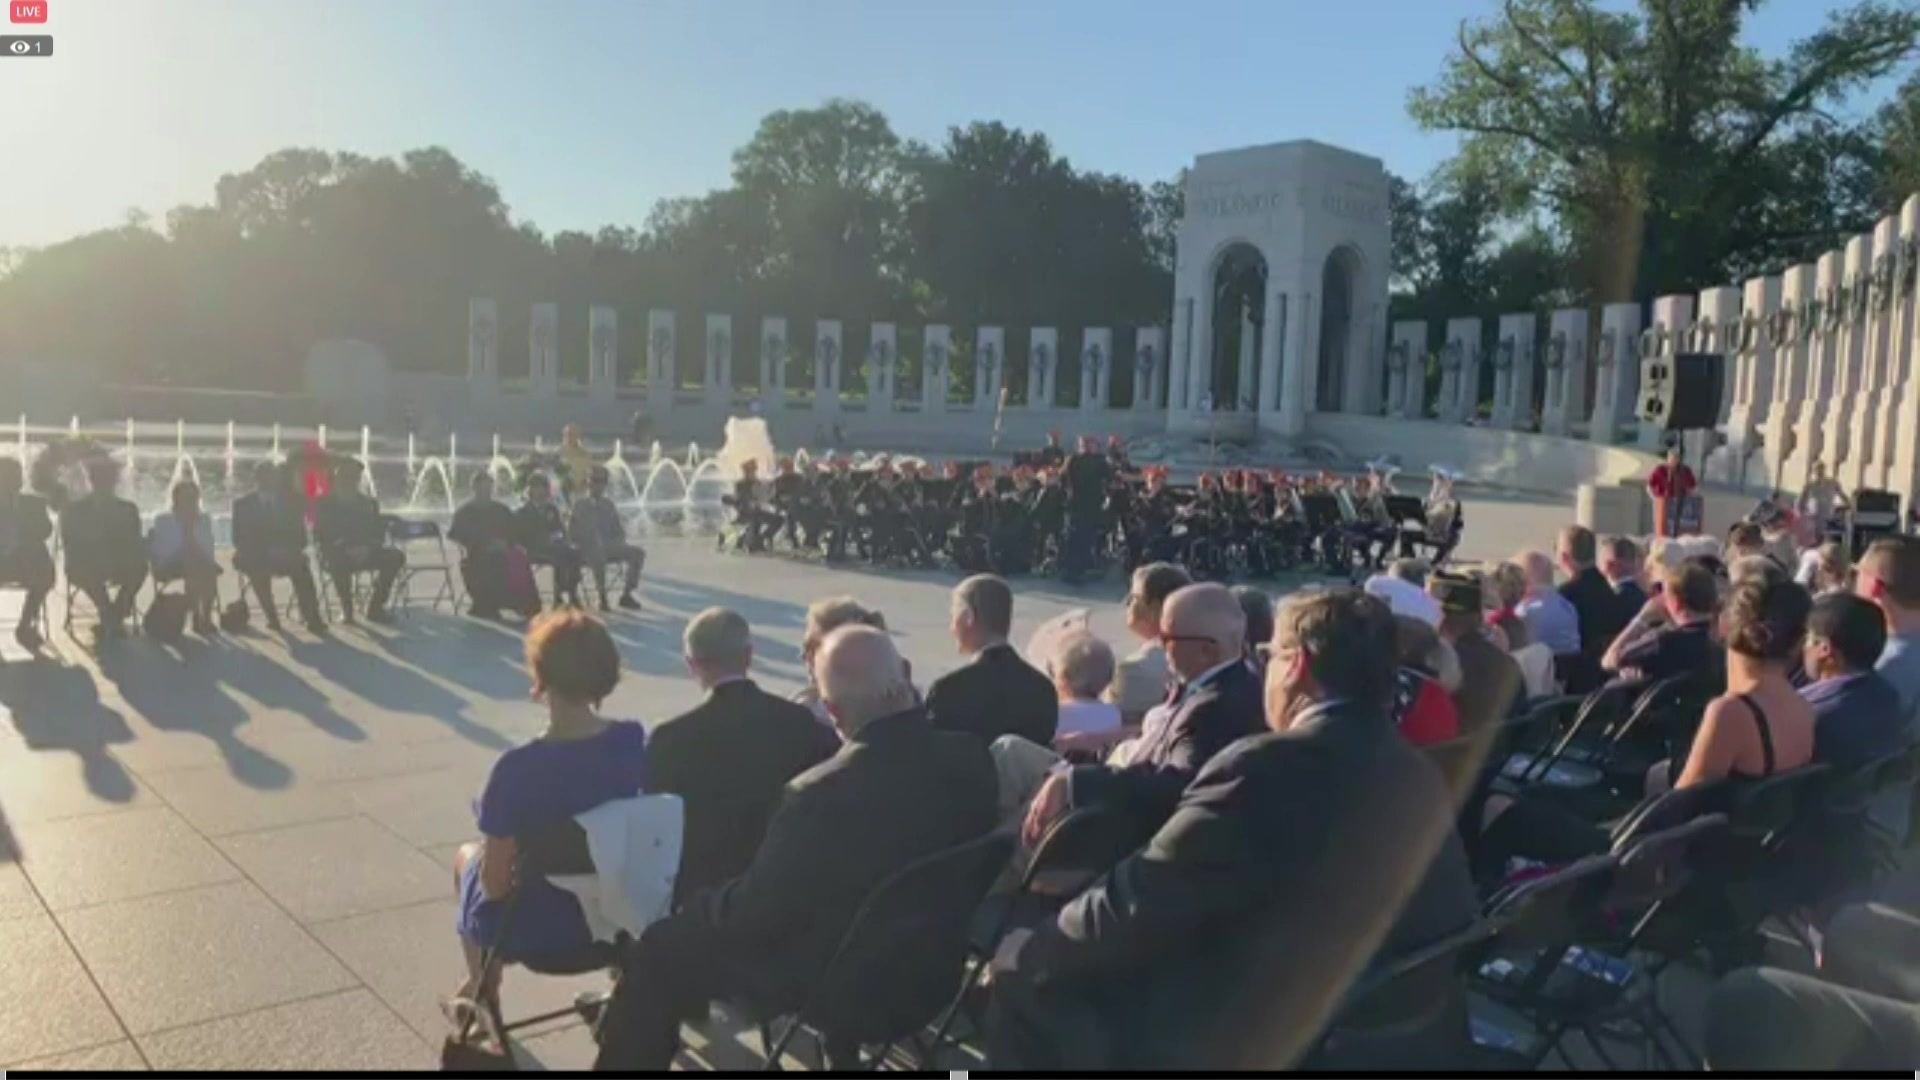 An event at the National World War II Memorial in Washington commemorates the 75th anniversary of the liberation of Paris, Aug. 29, 2019.